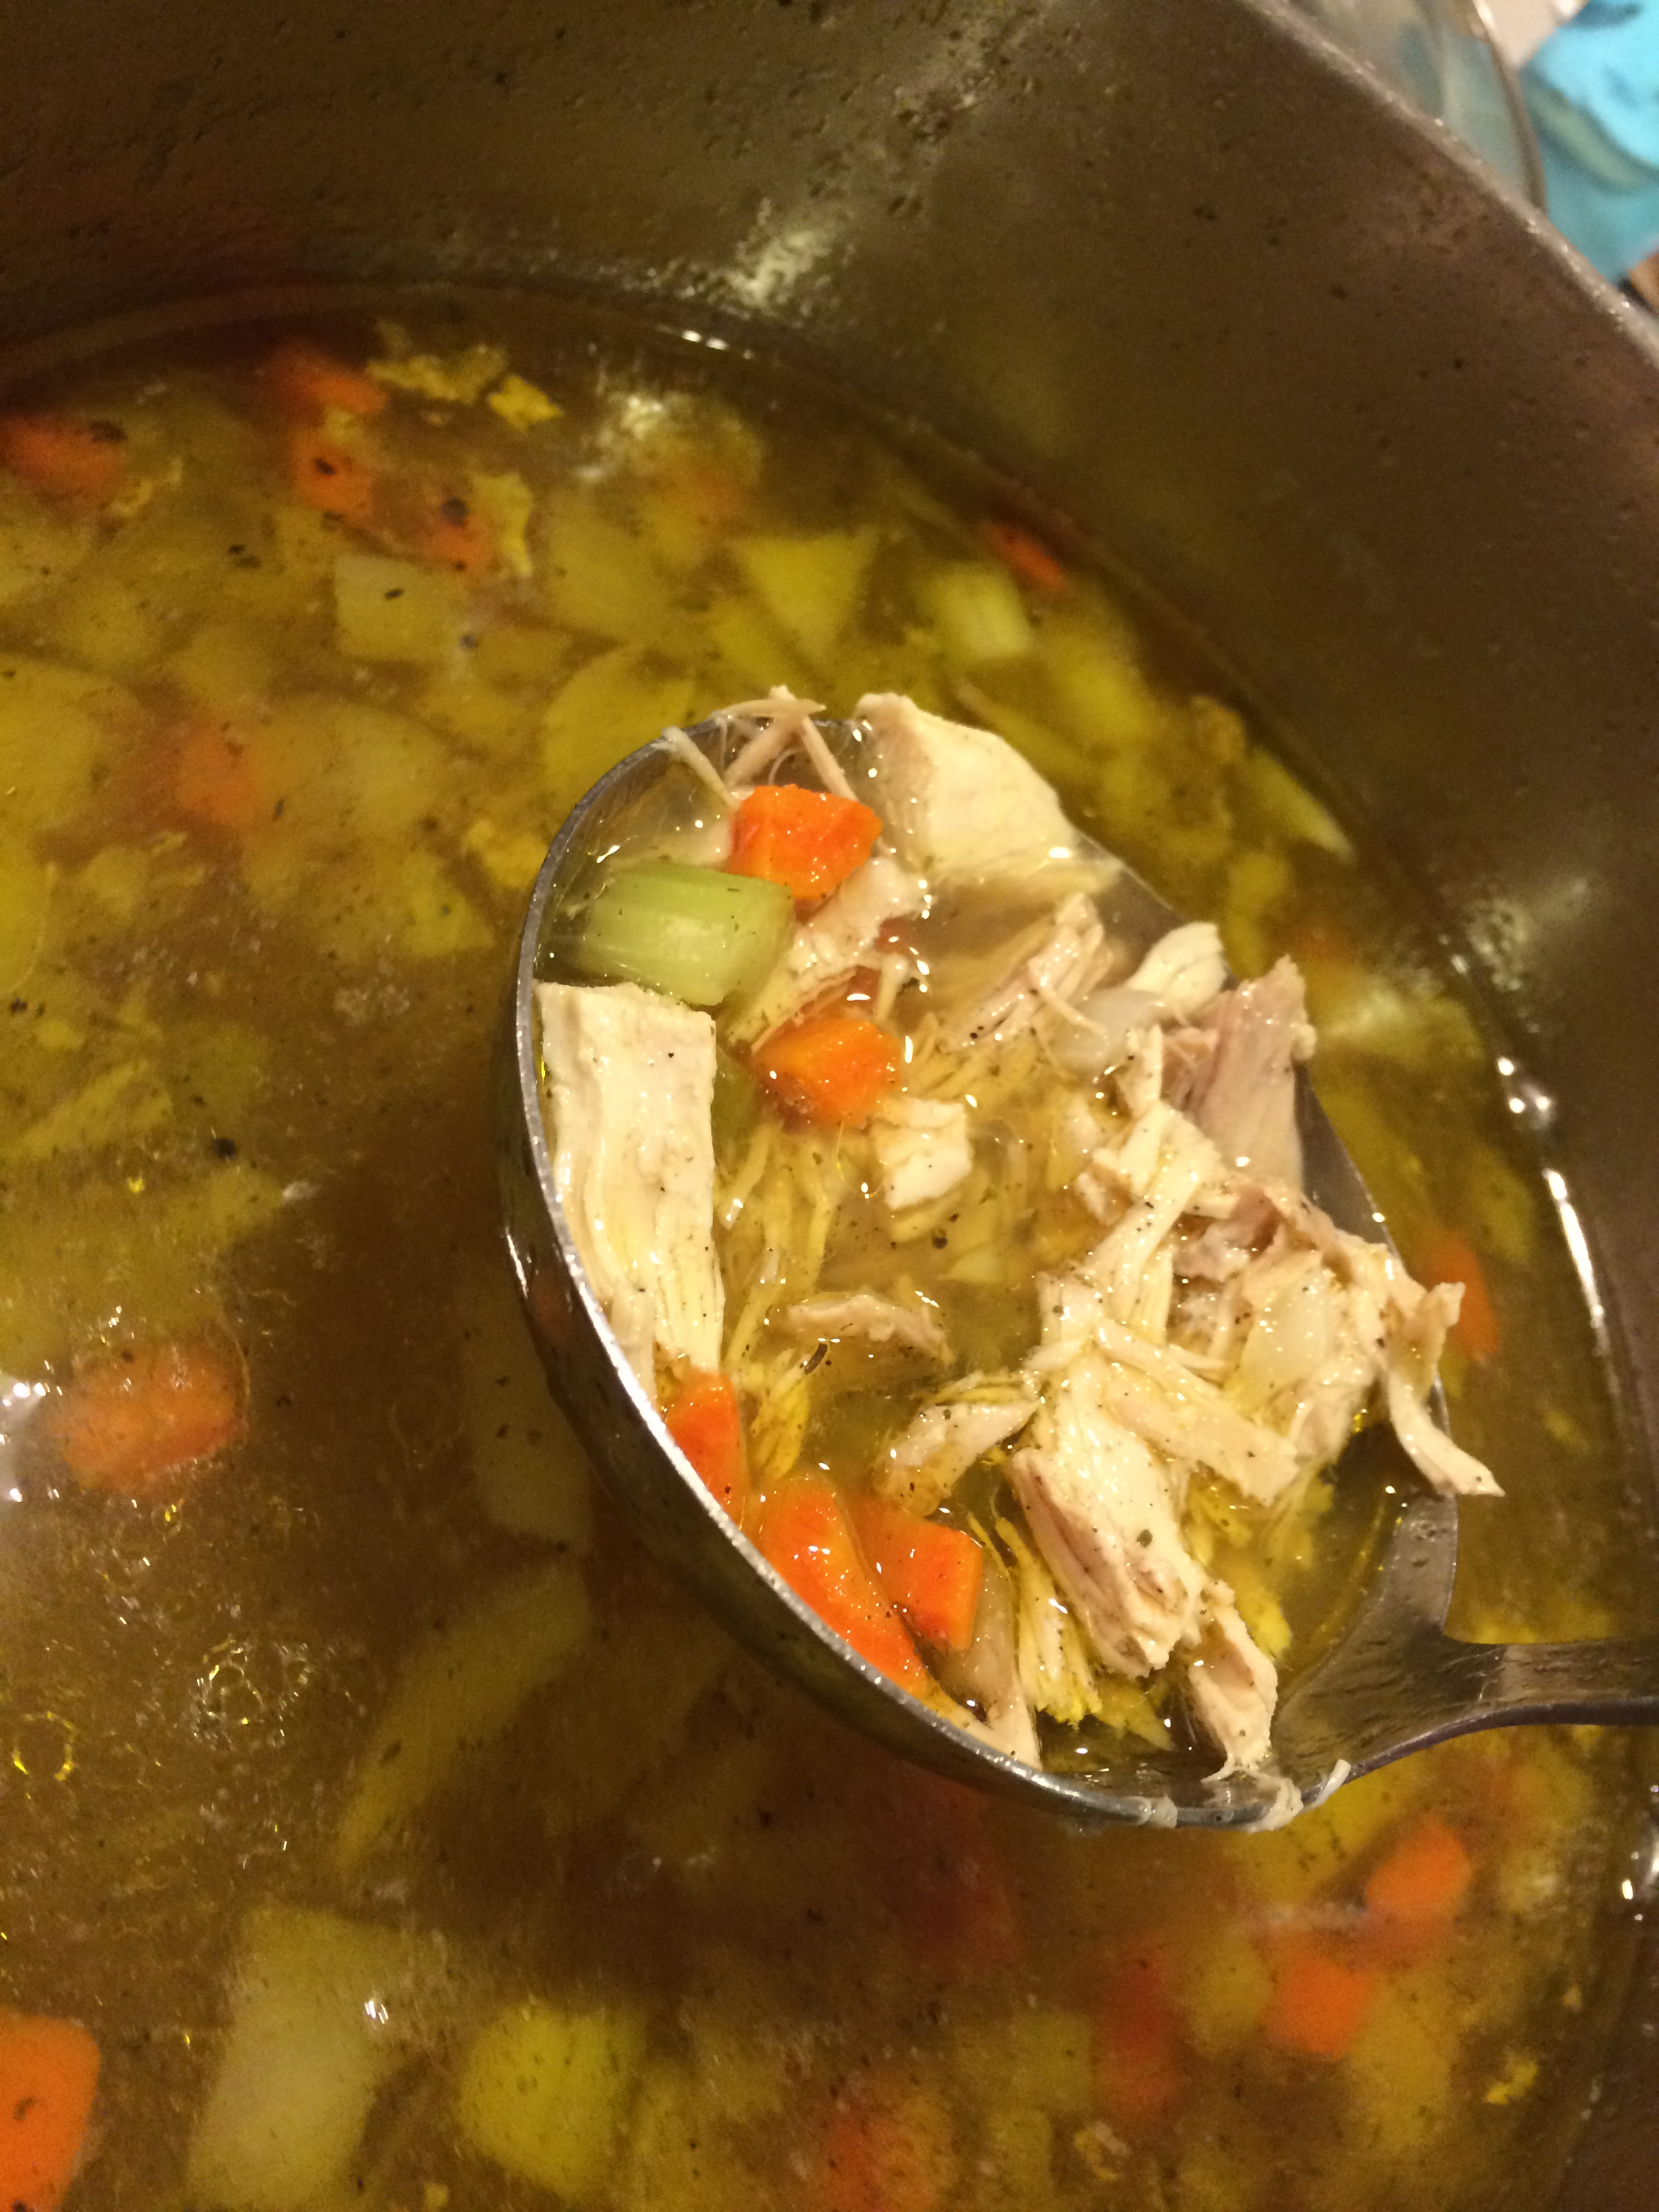 Dads homemade chicken soup paleo healthy recipes for food lovers homemade chicken soup forumfinder Choice Image